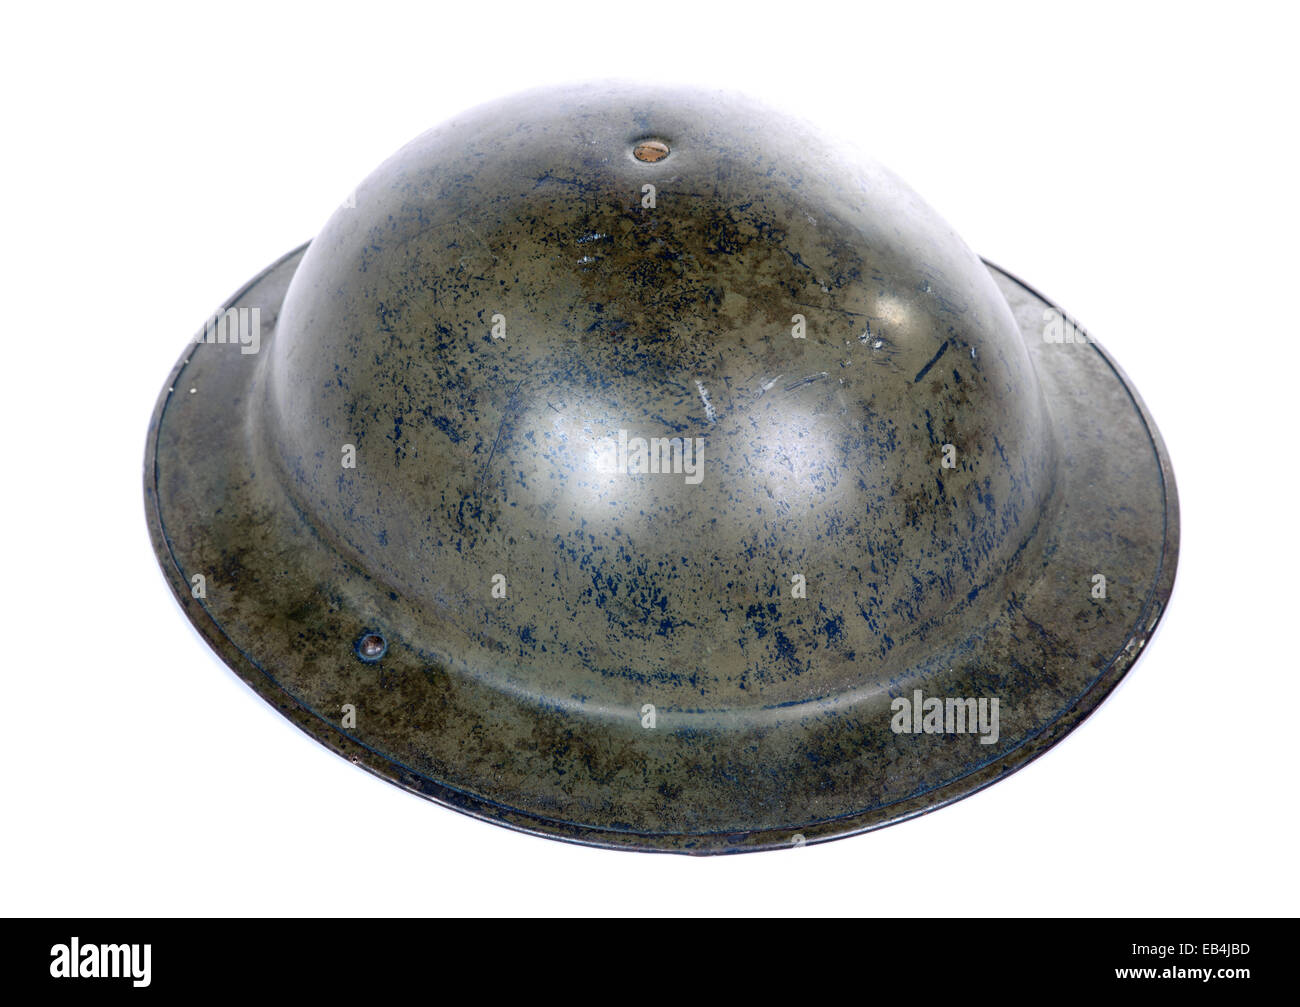 British ww2 military helmet isolated on a white background - Stock Image